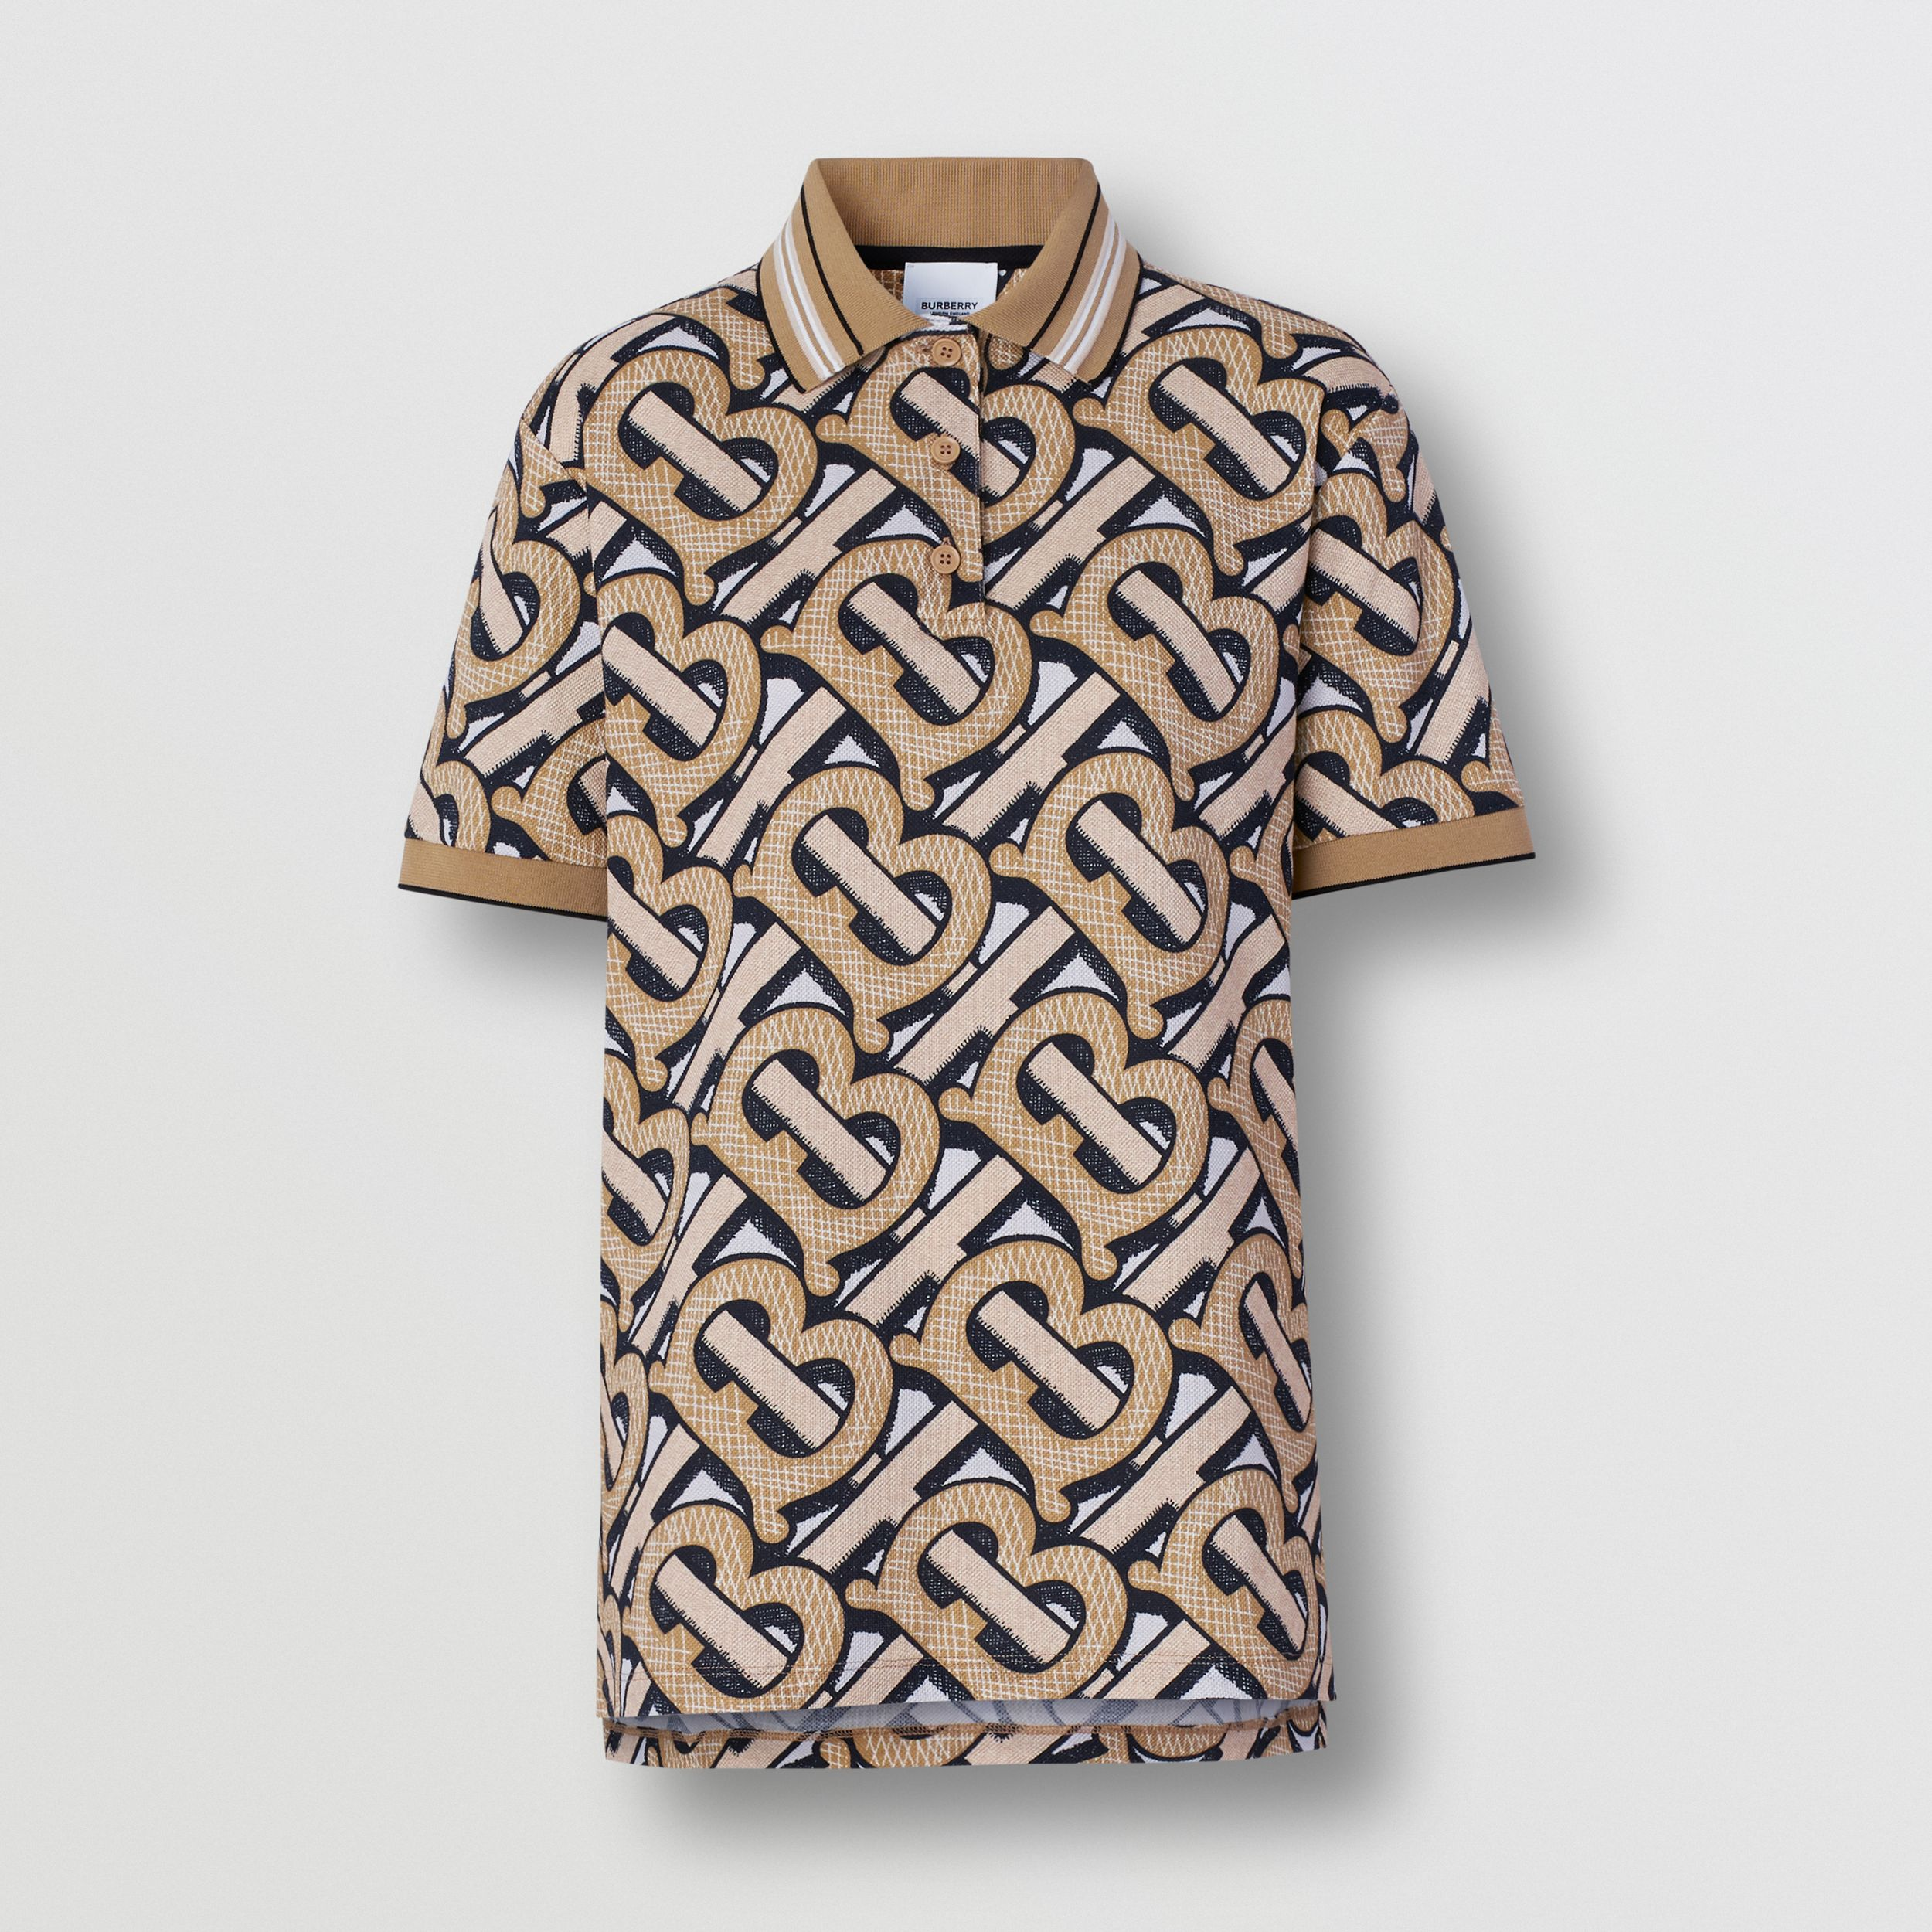 Monogram Print Cotton Piqué Polo Shirt – Unisex in Dark Beige | Burberry - 1